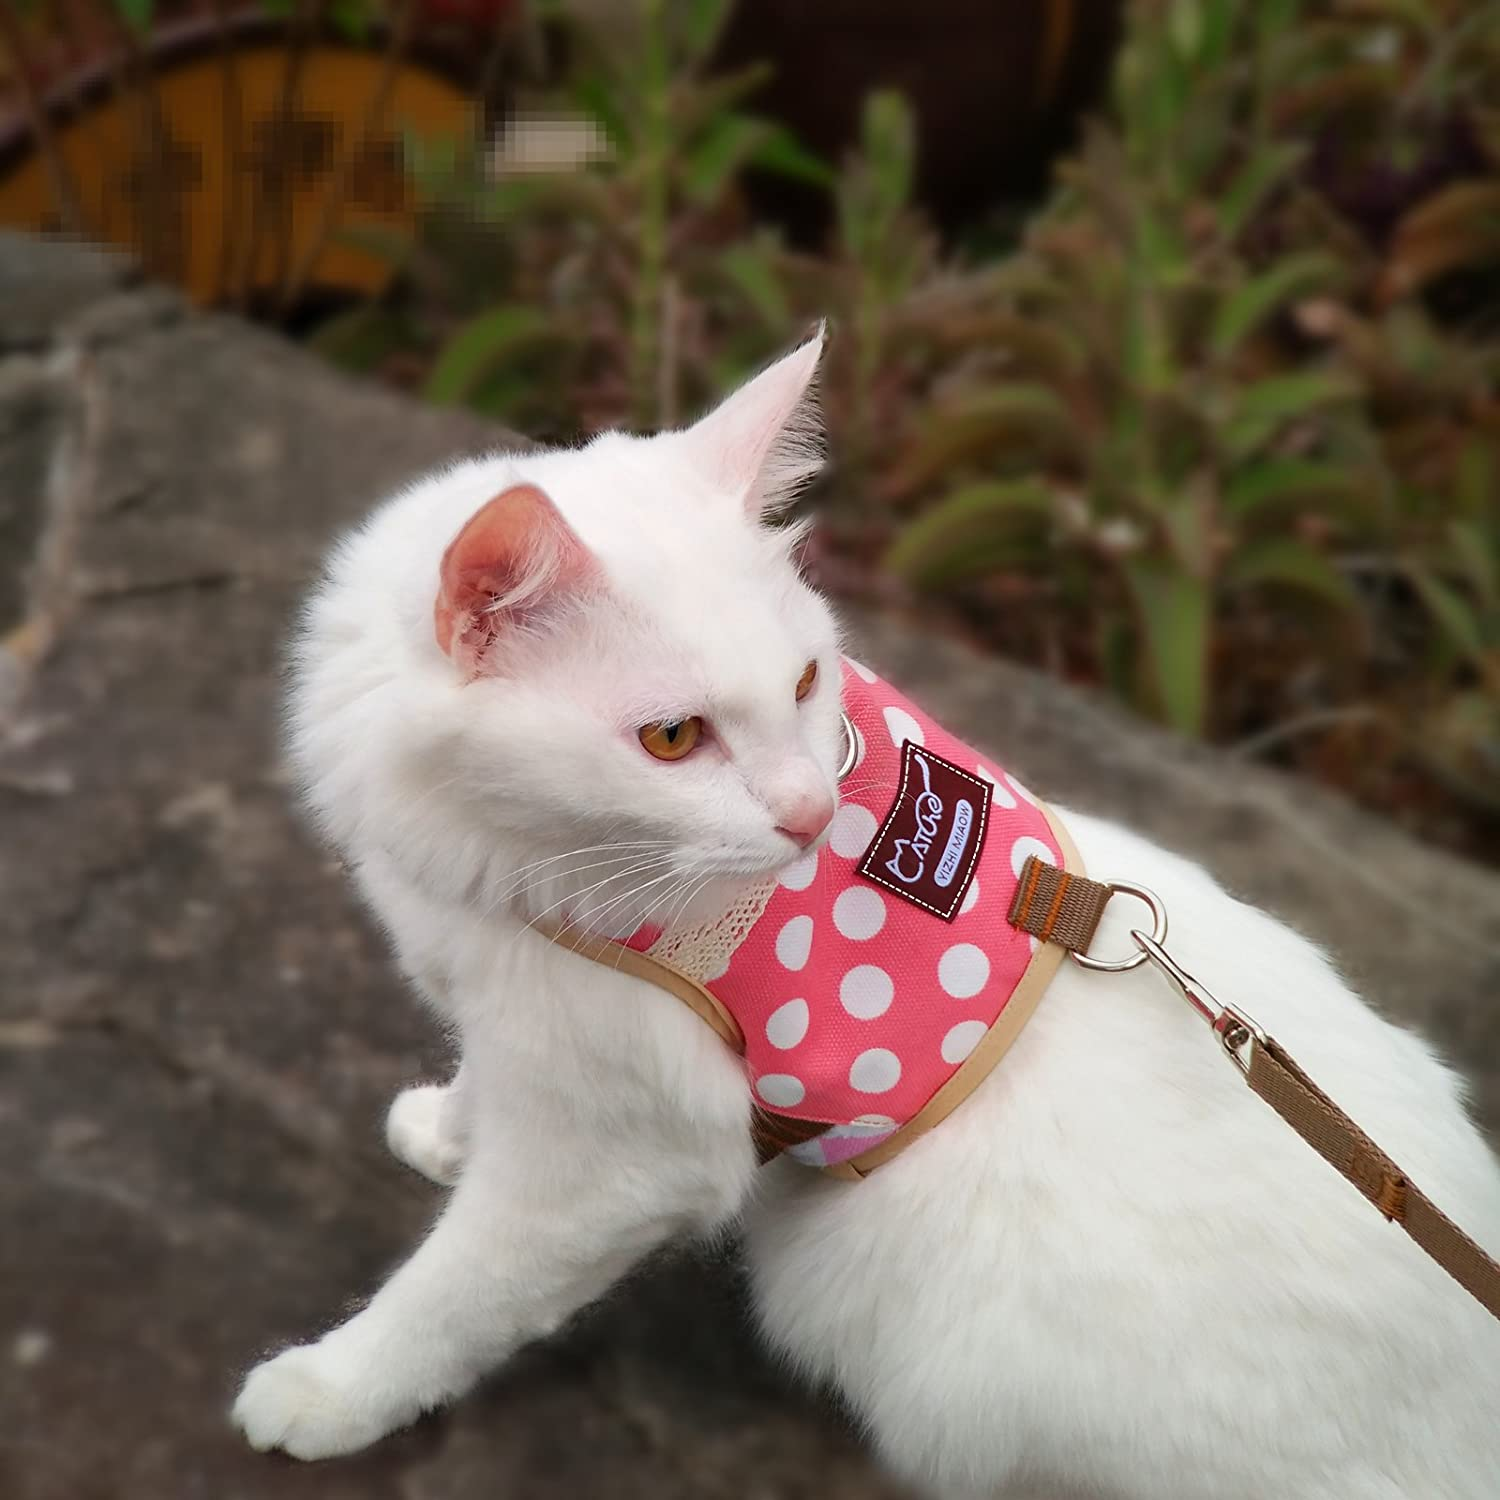 Stock Show Cute Vintage Bunny Vest Harness and Leash Set with Button Decor Small Pets Adjustable Formal Suit Style Plaid Stripe Harness for Rabbit Kitten Small Animal Walking Jogging